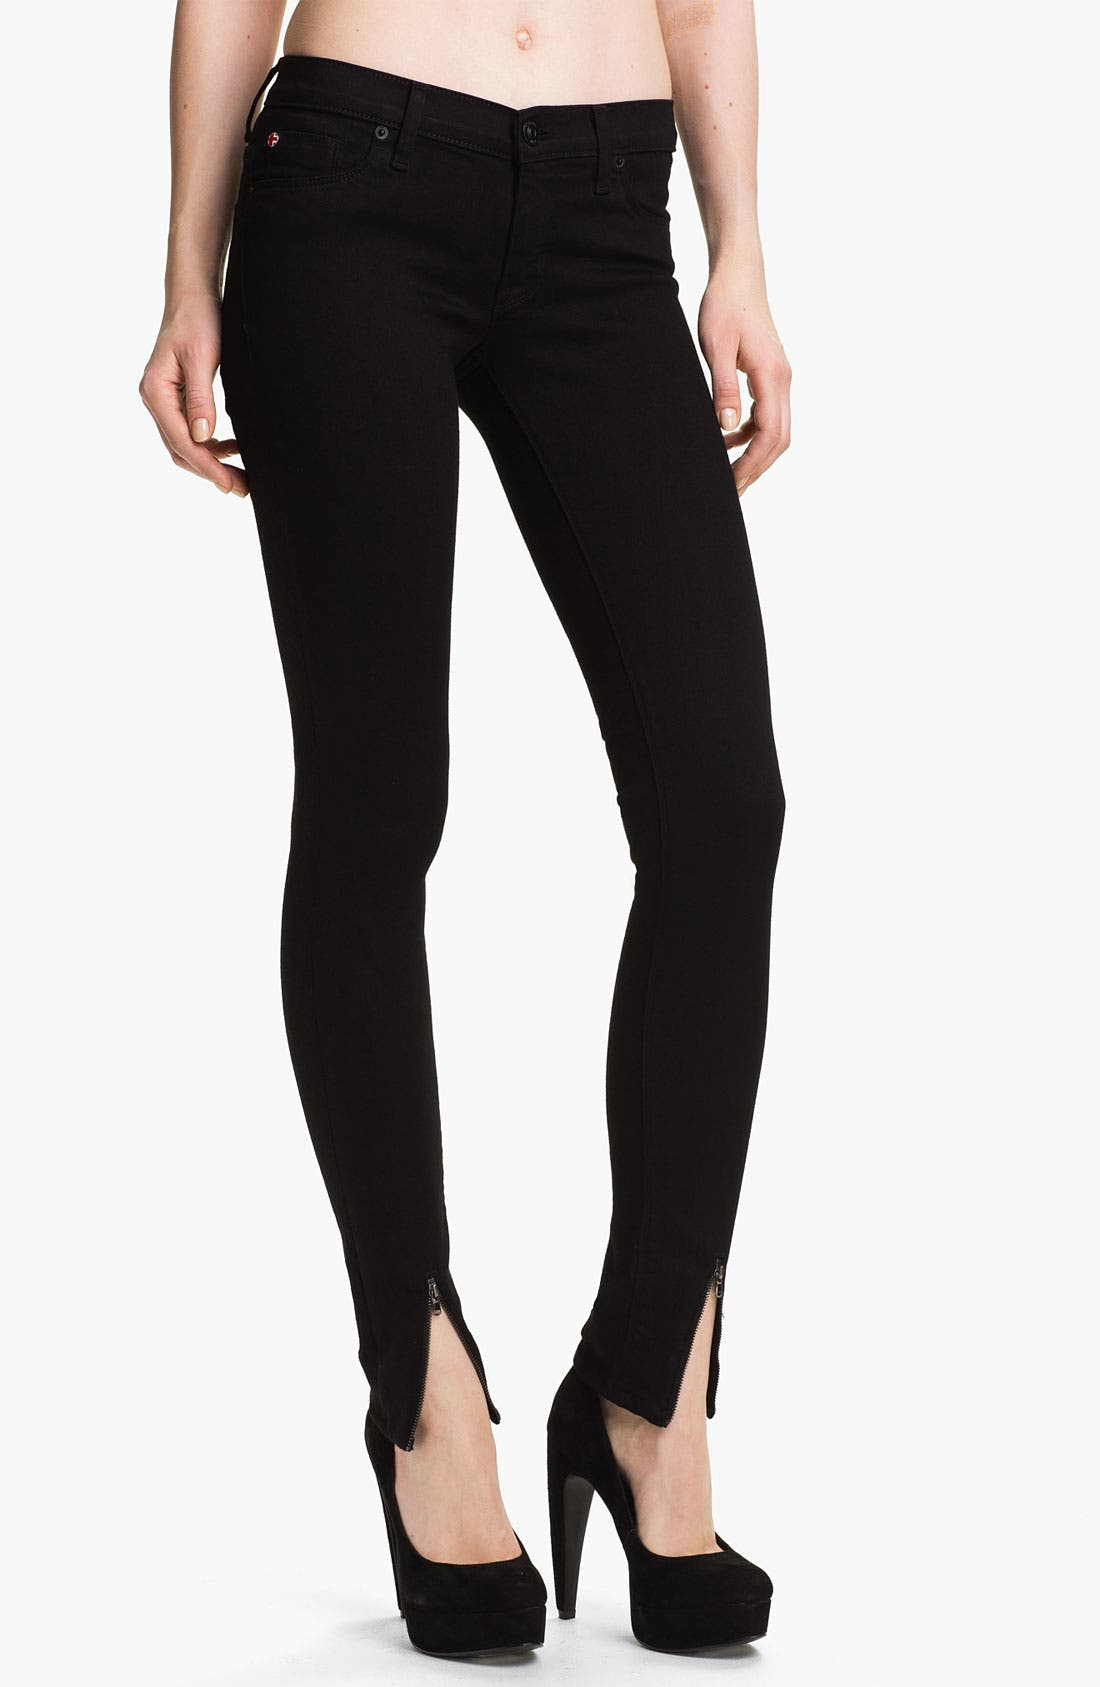 Alternate Image 1 Selected - Hudson Jeans 'Juliette' Ankle Zip Super Skinny Jeans (Black)